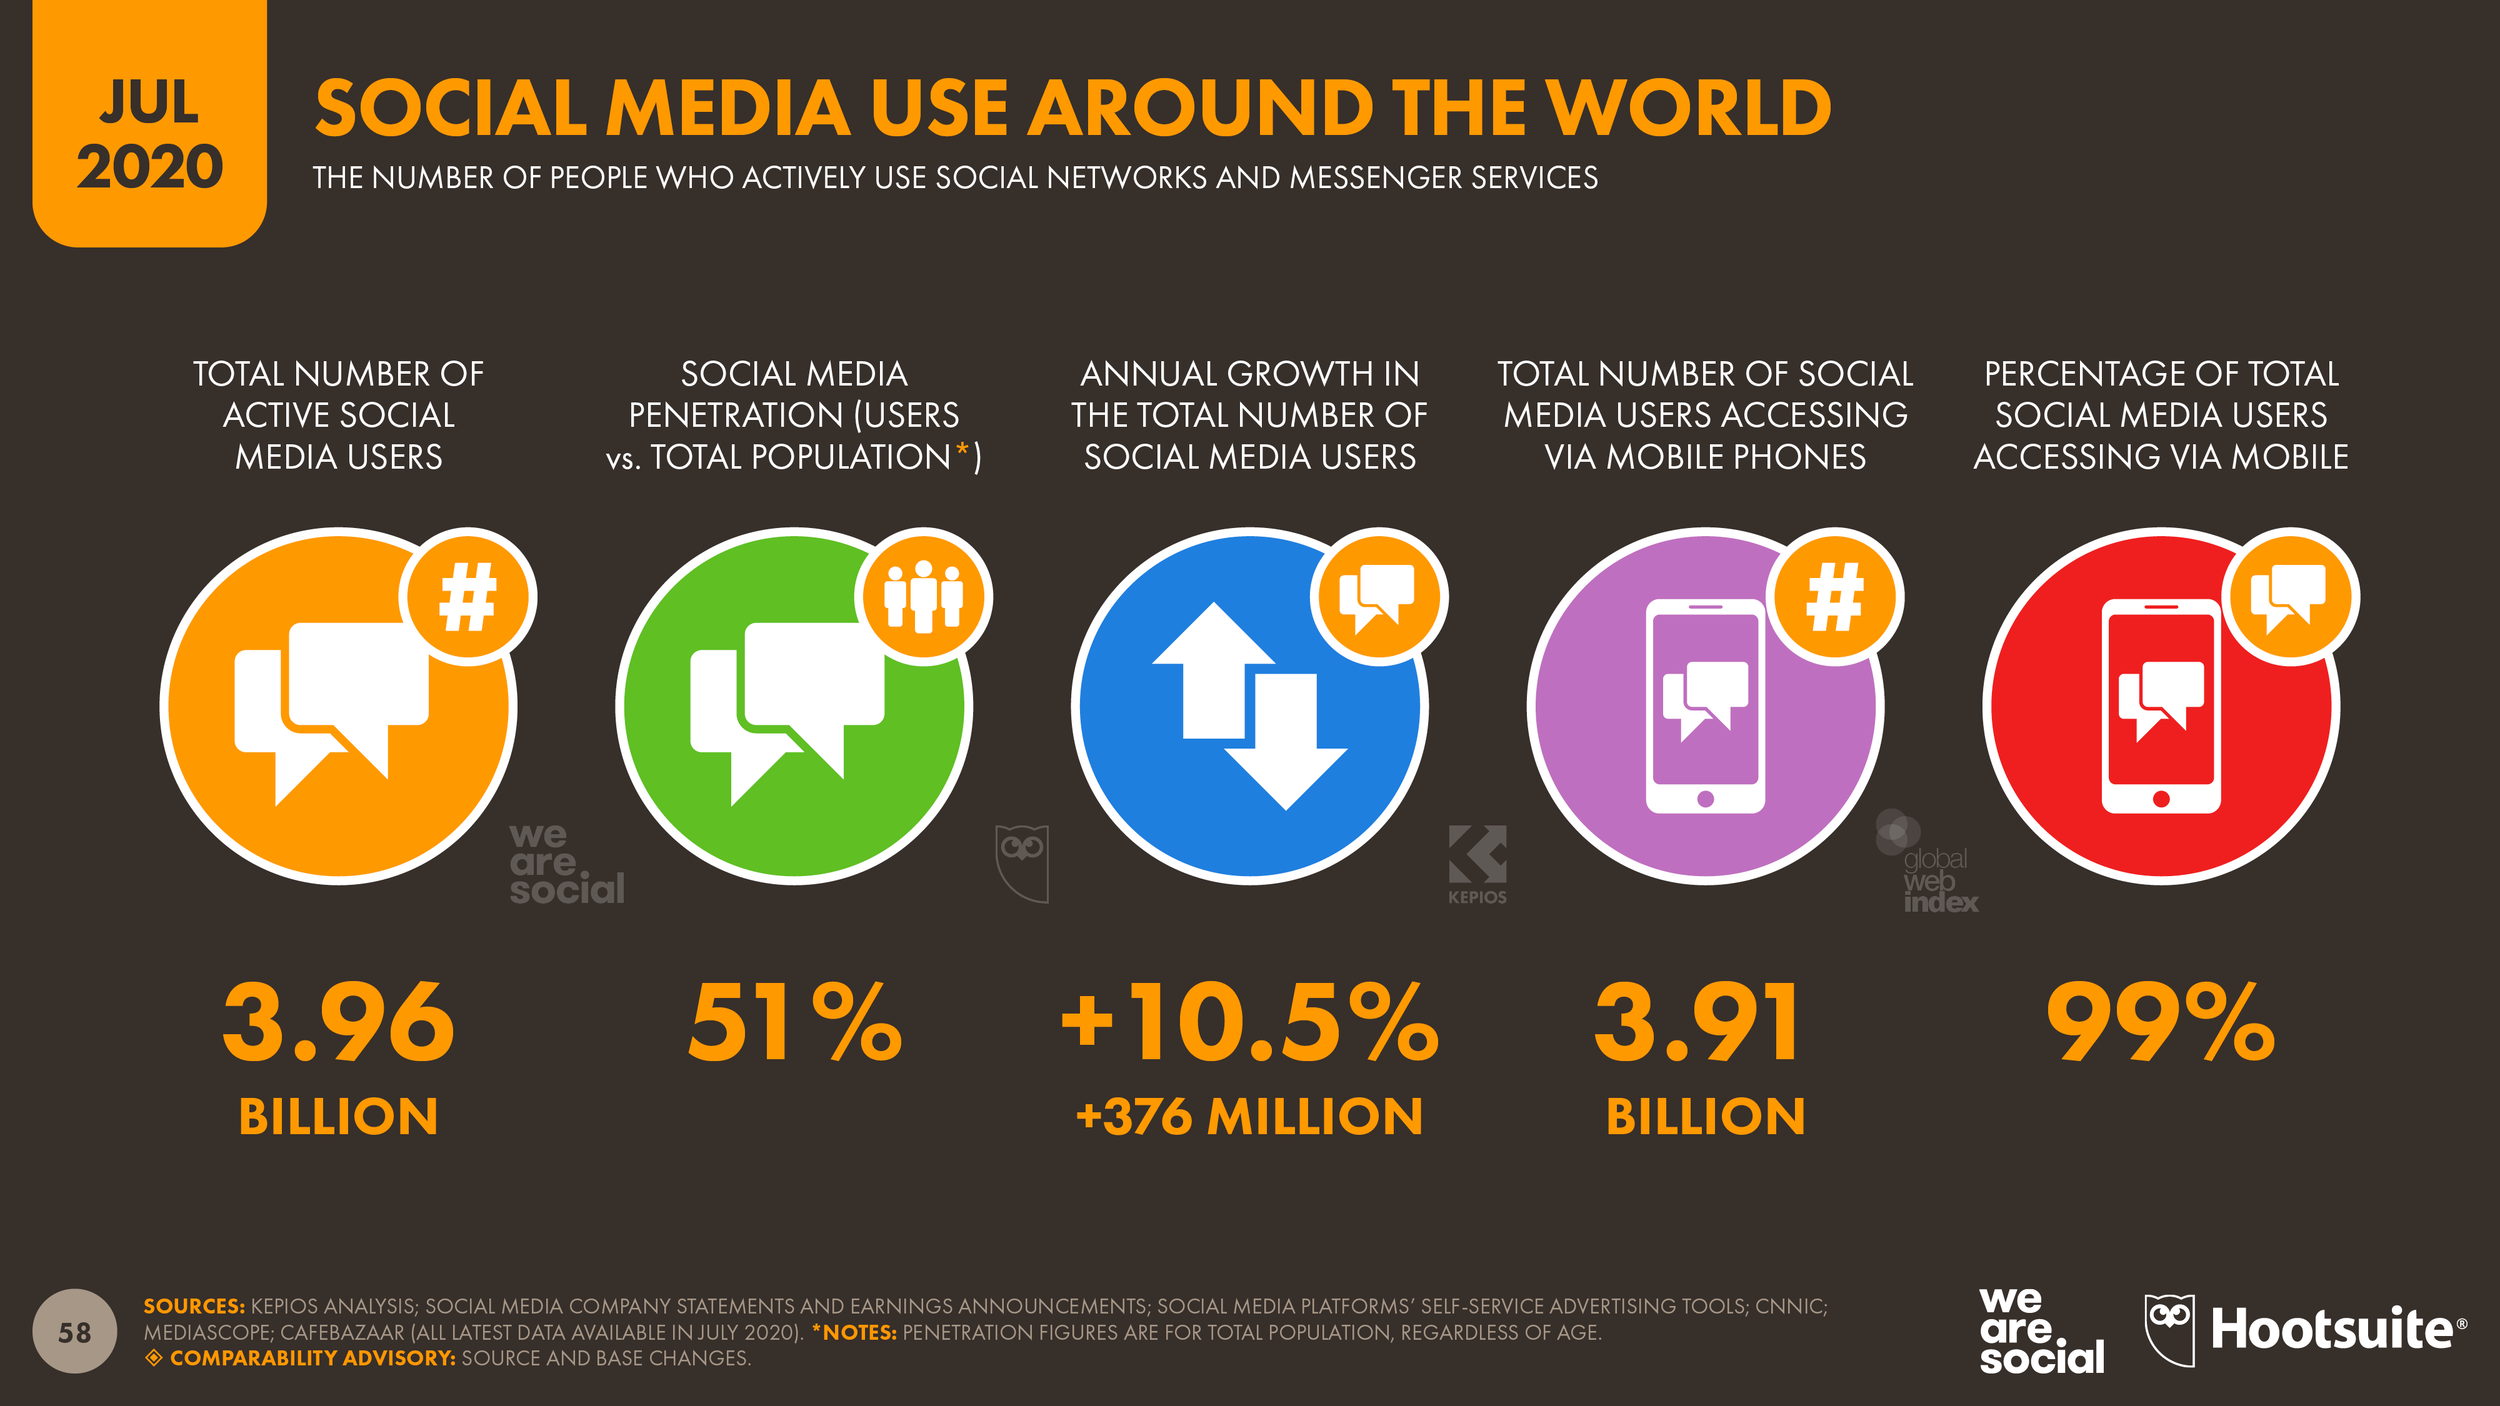 Breakdown of social media use around the world